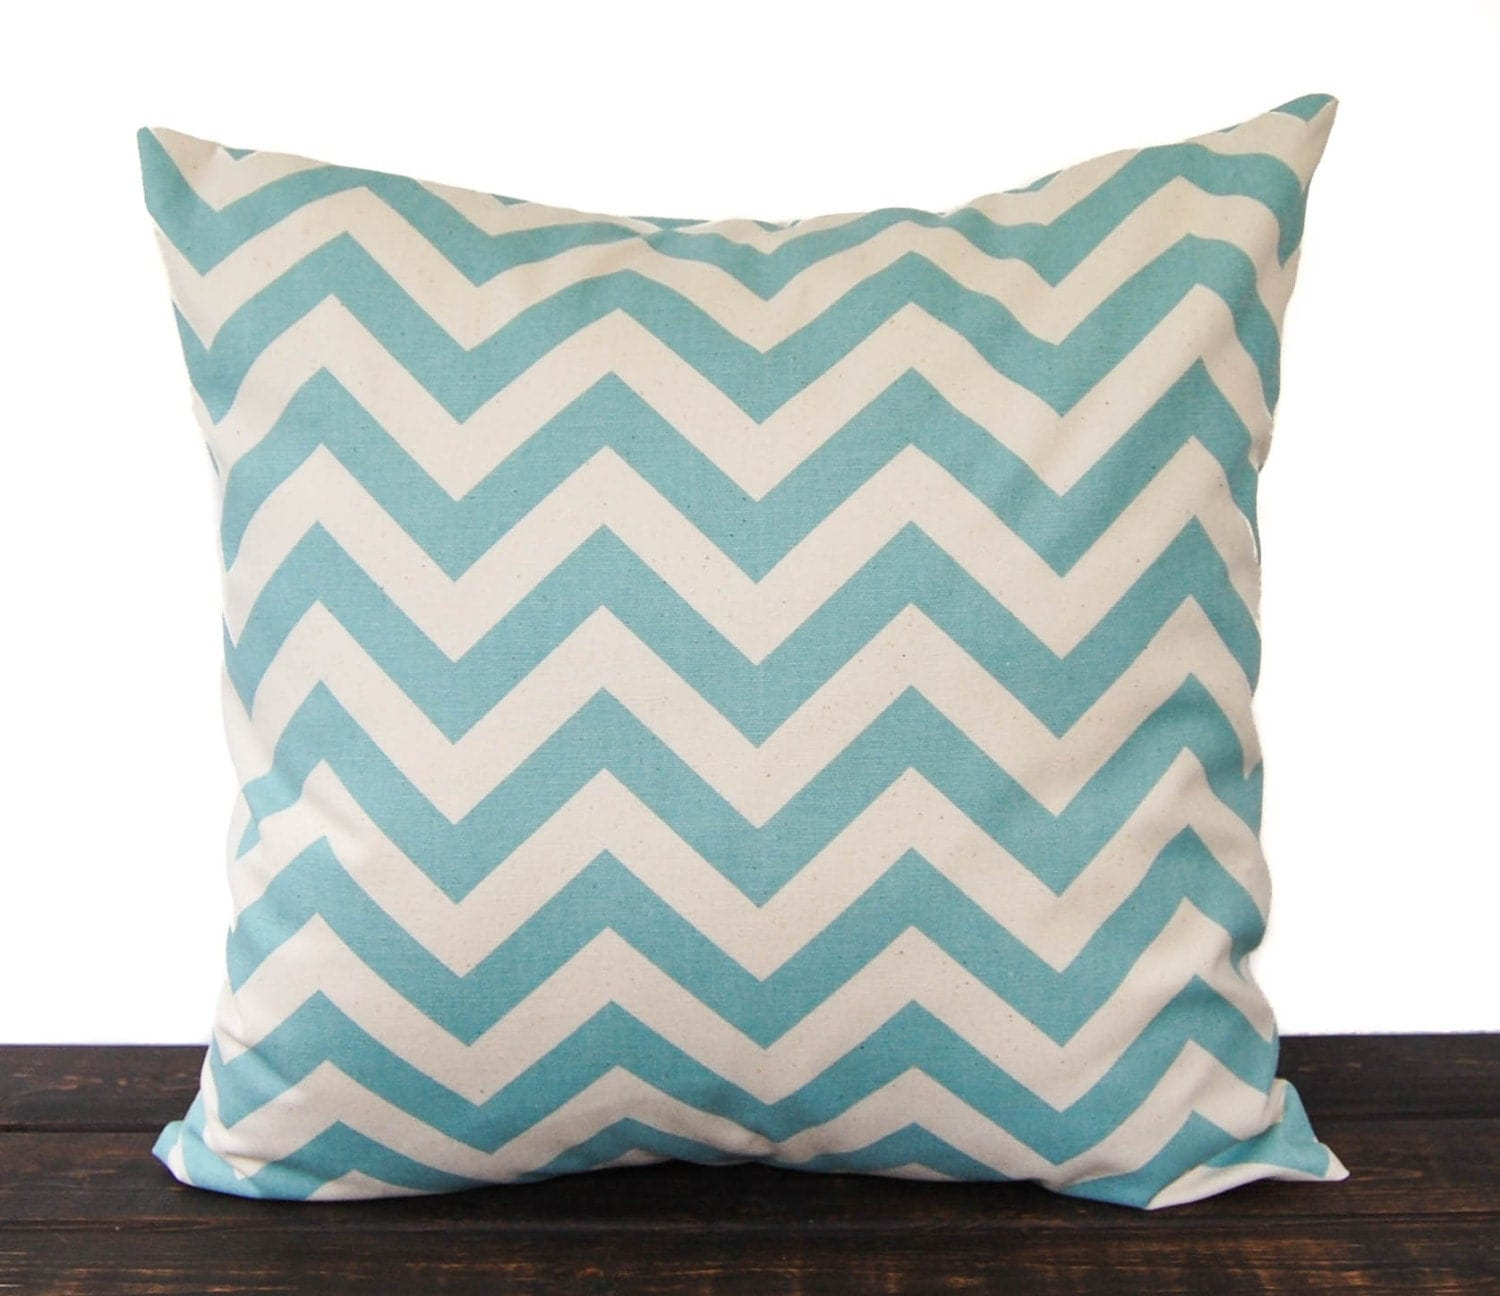 Throw pillow cover 18 x 18 smokey blue natural by ThePillowPeople